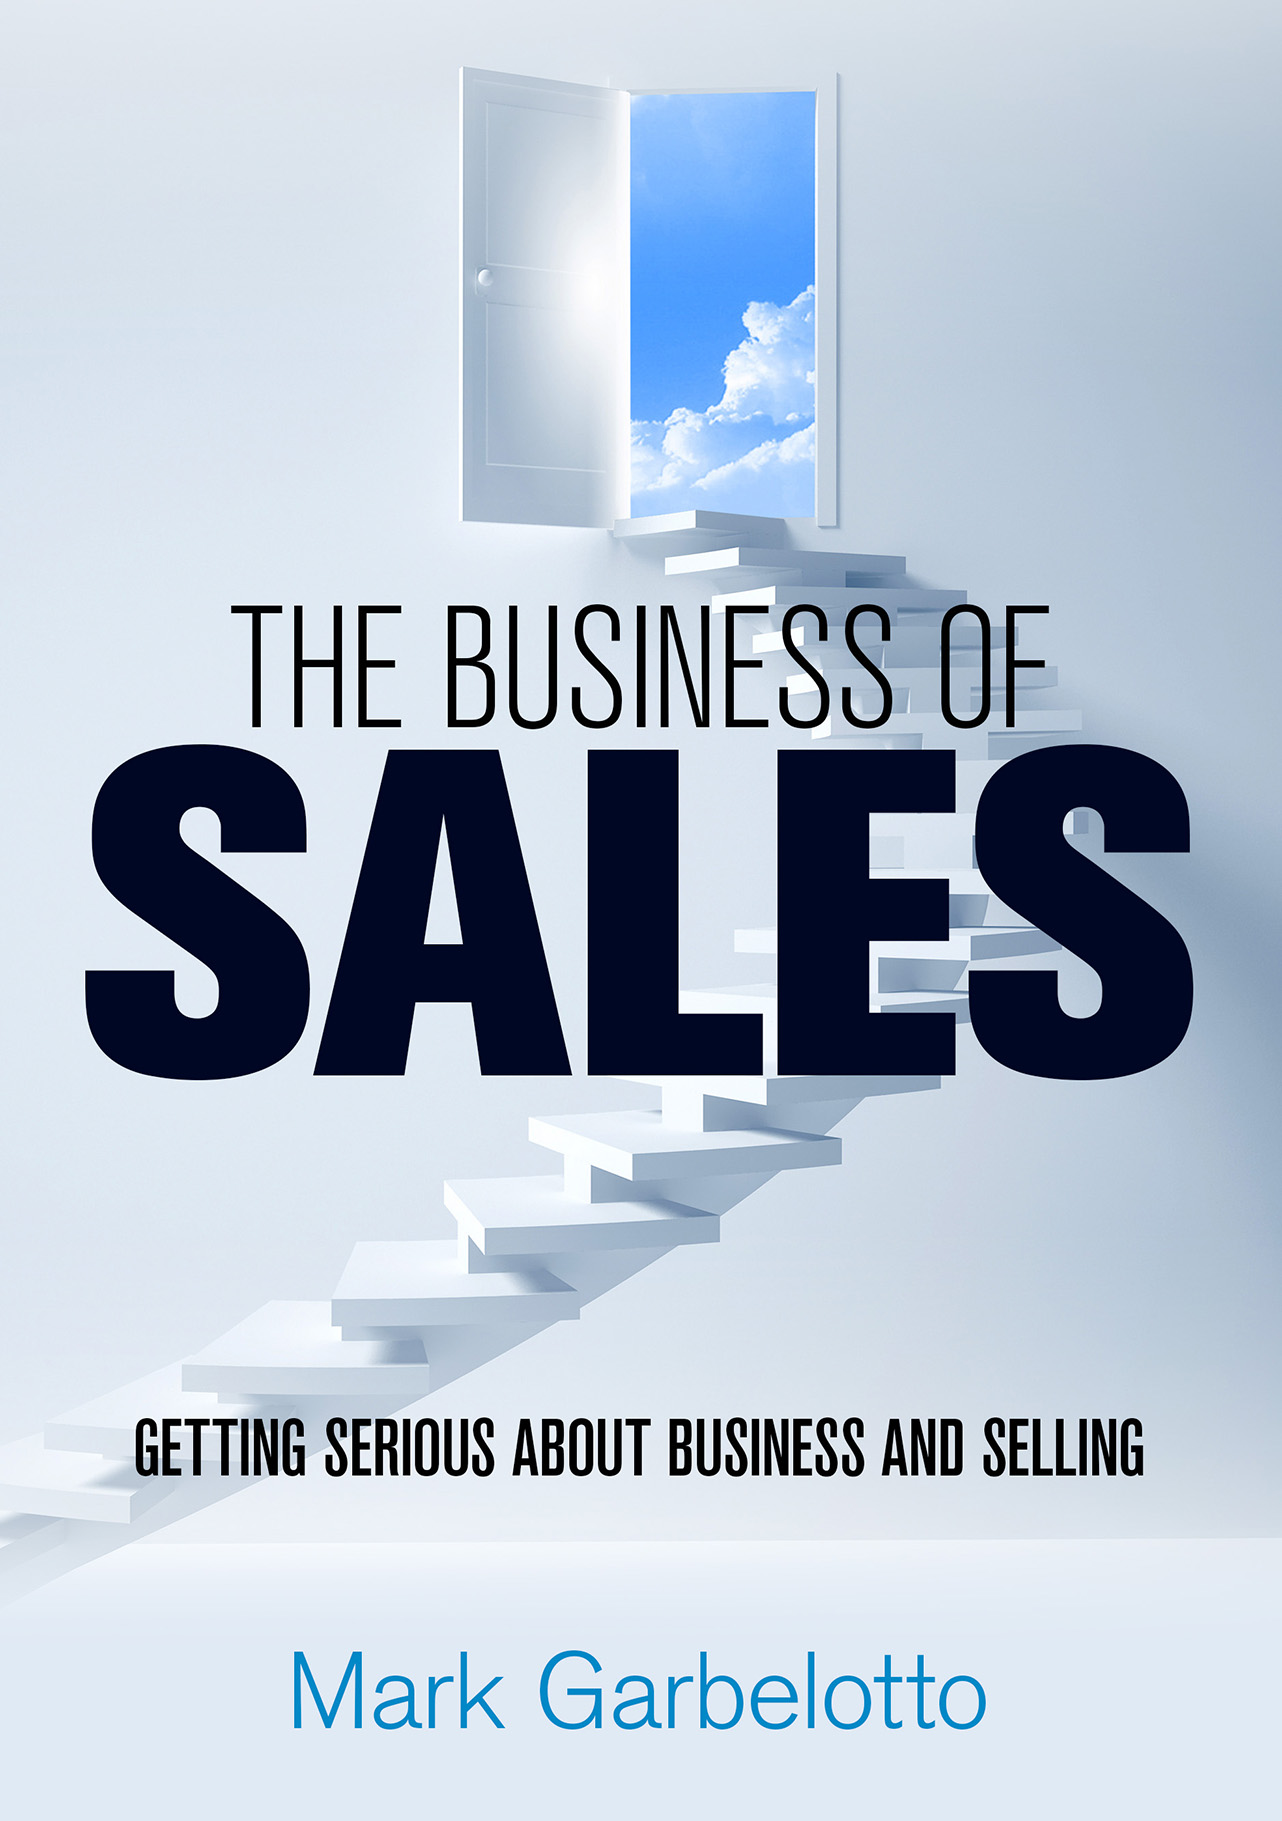 Business of Sales cover 02.jpg